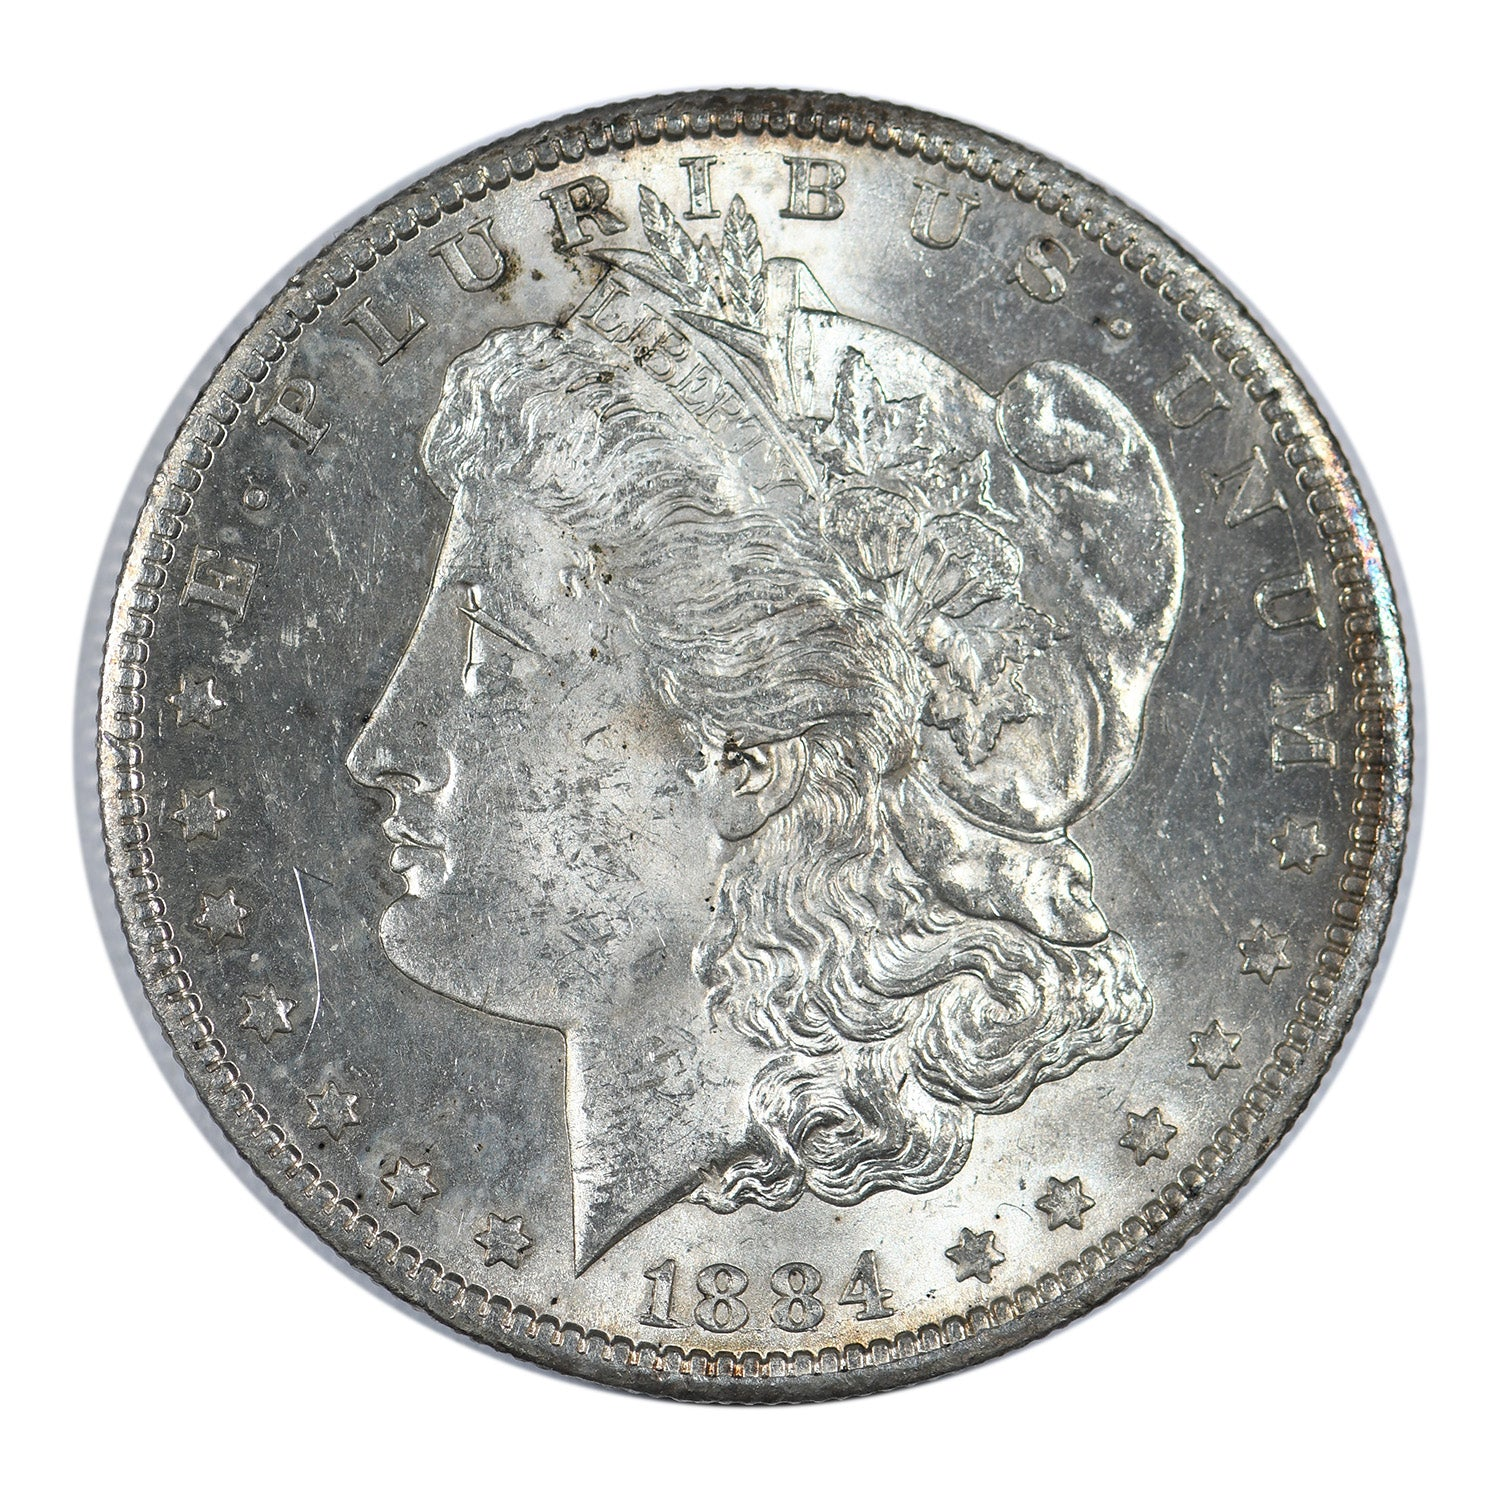 1884-CC Morgan Dollar Mint State Condition